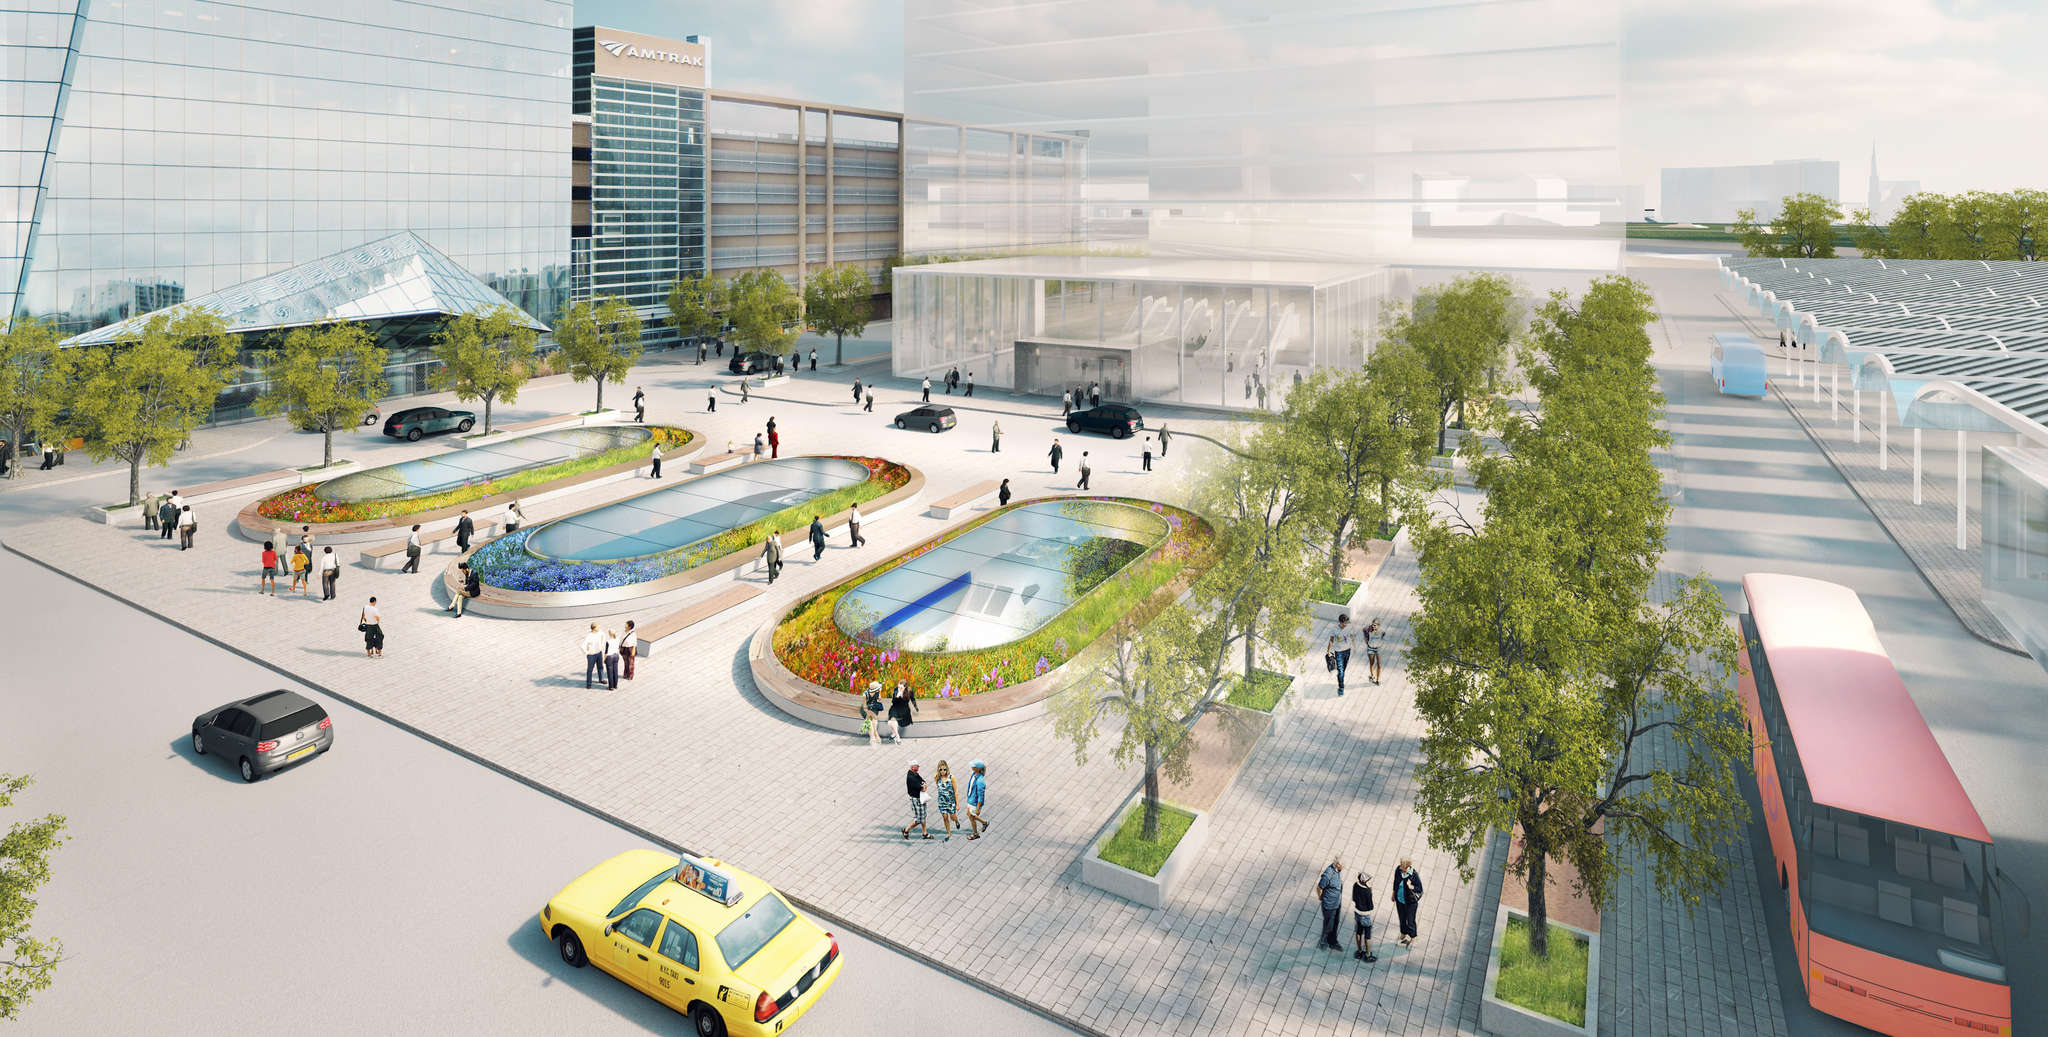 A rendering shows what the bus station could look like, at the base of the Cira Centre.